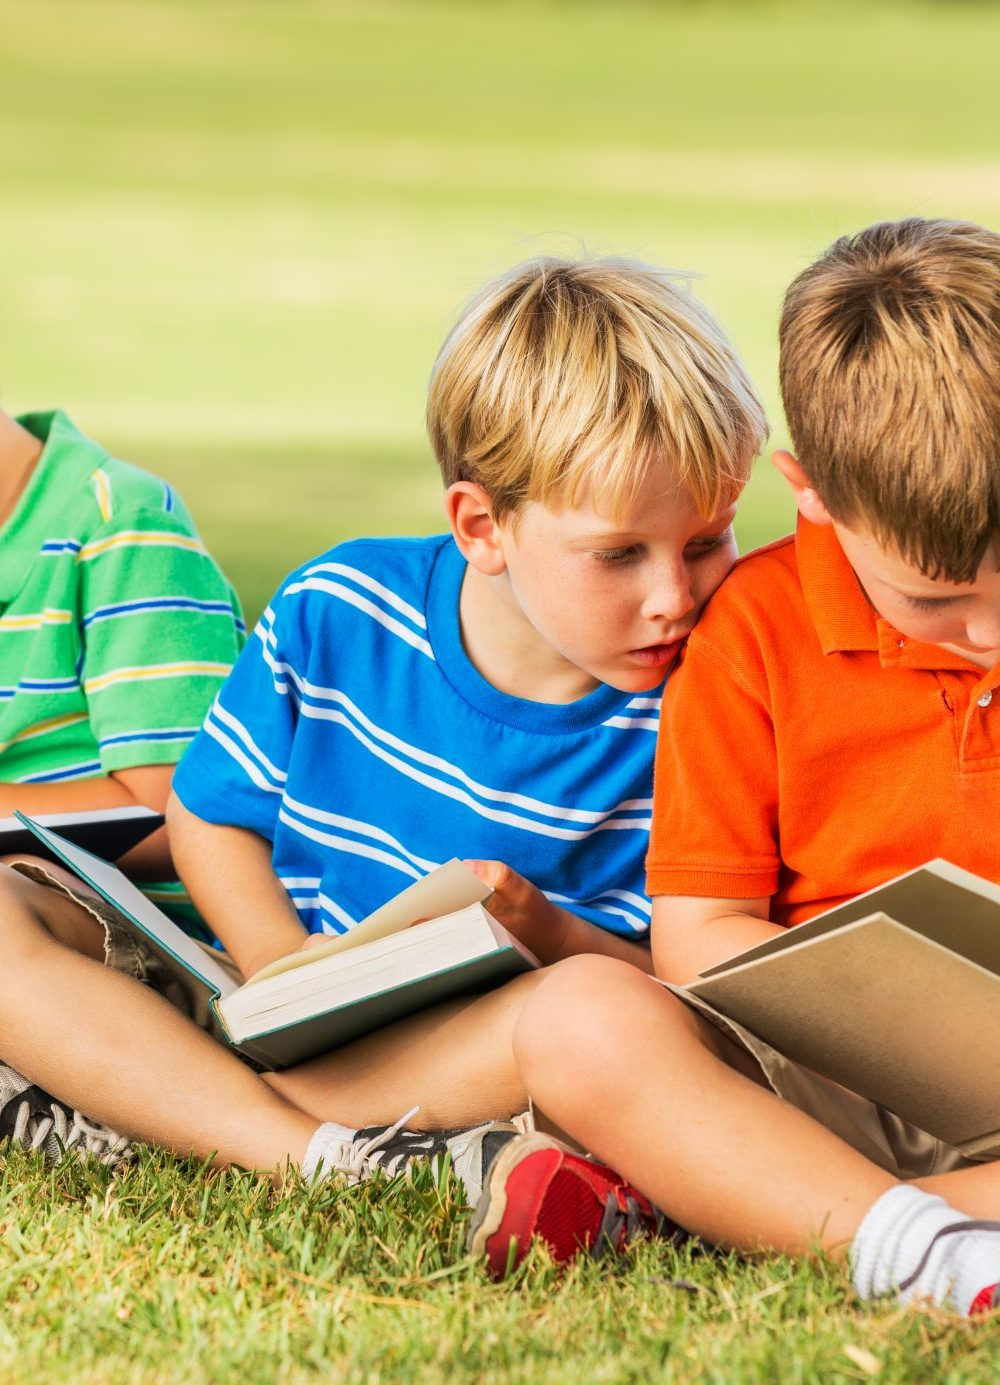 Why I am Offering Incentives to Get my Kids to Read